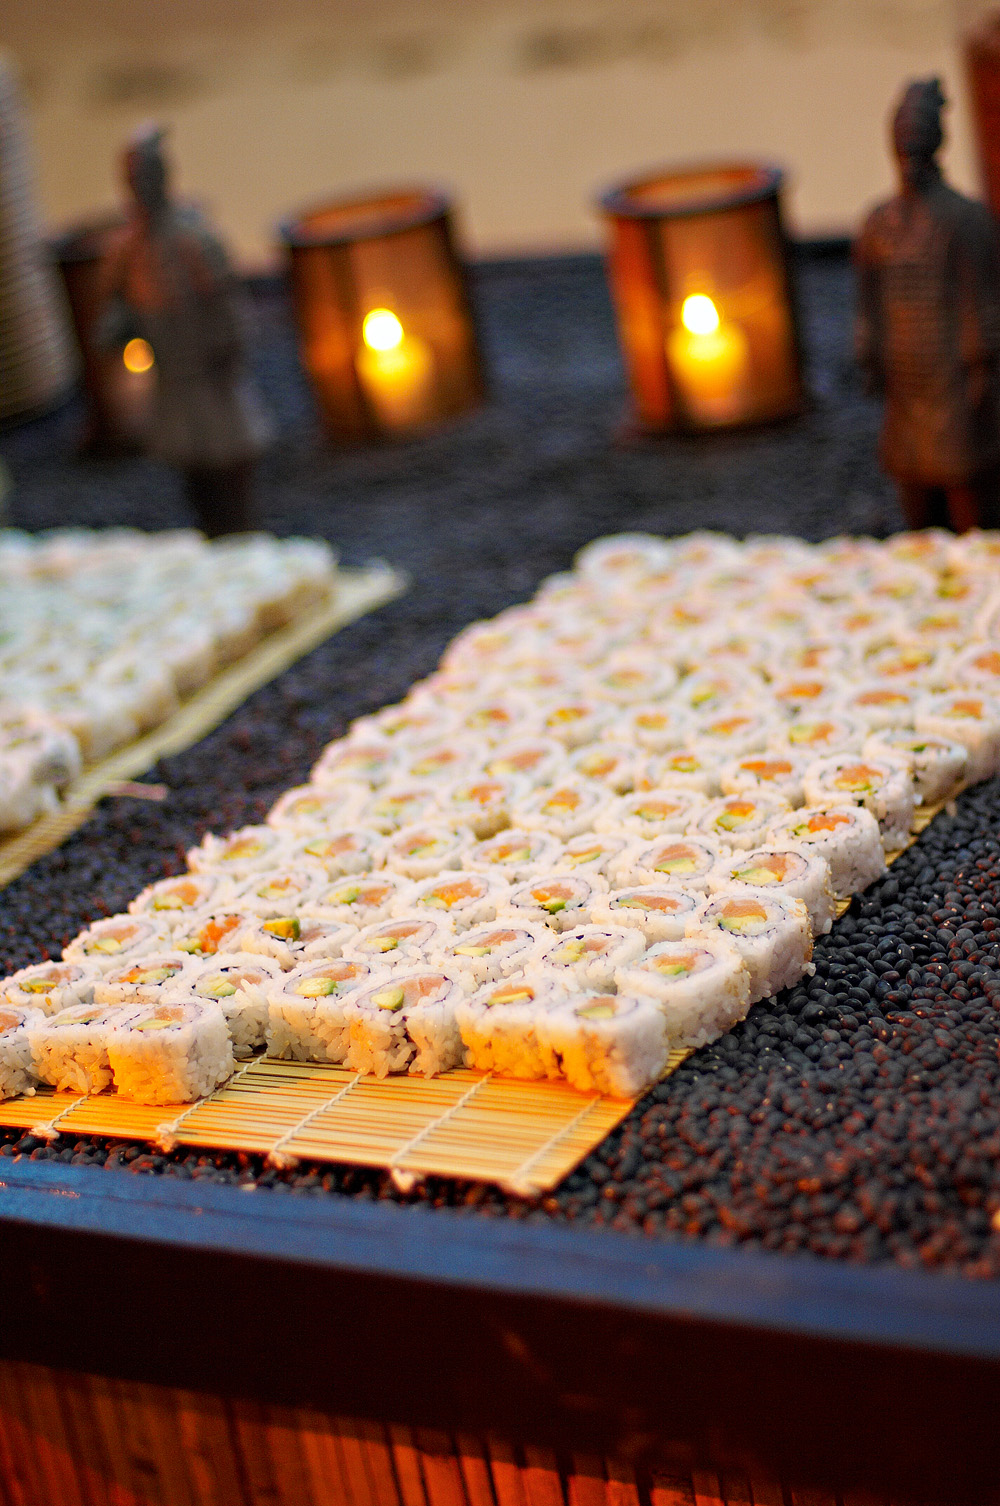 Taste Sushi Bars Always A Popular Food Station At